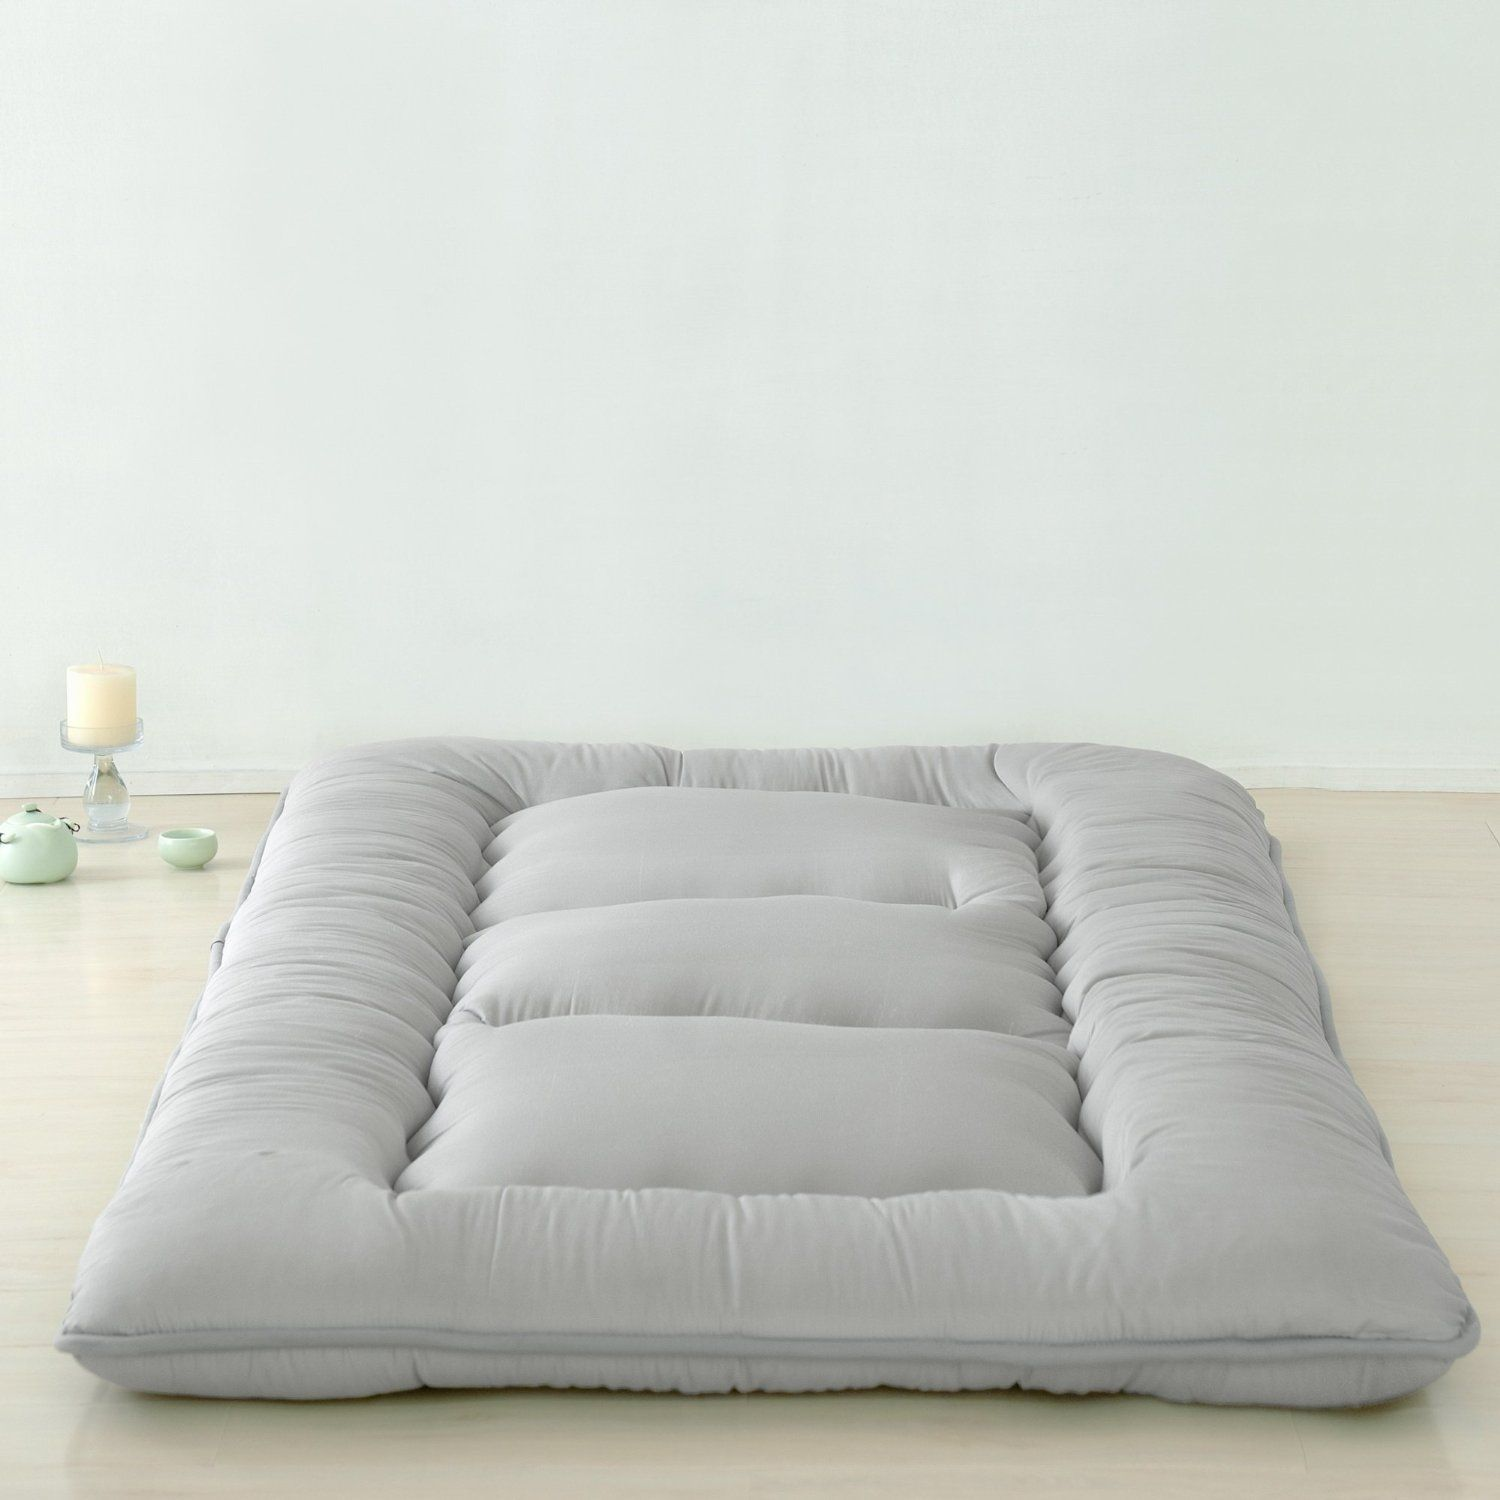 for twin ikea best mattress dreams photo futon just bedroom